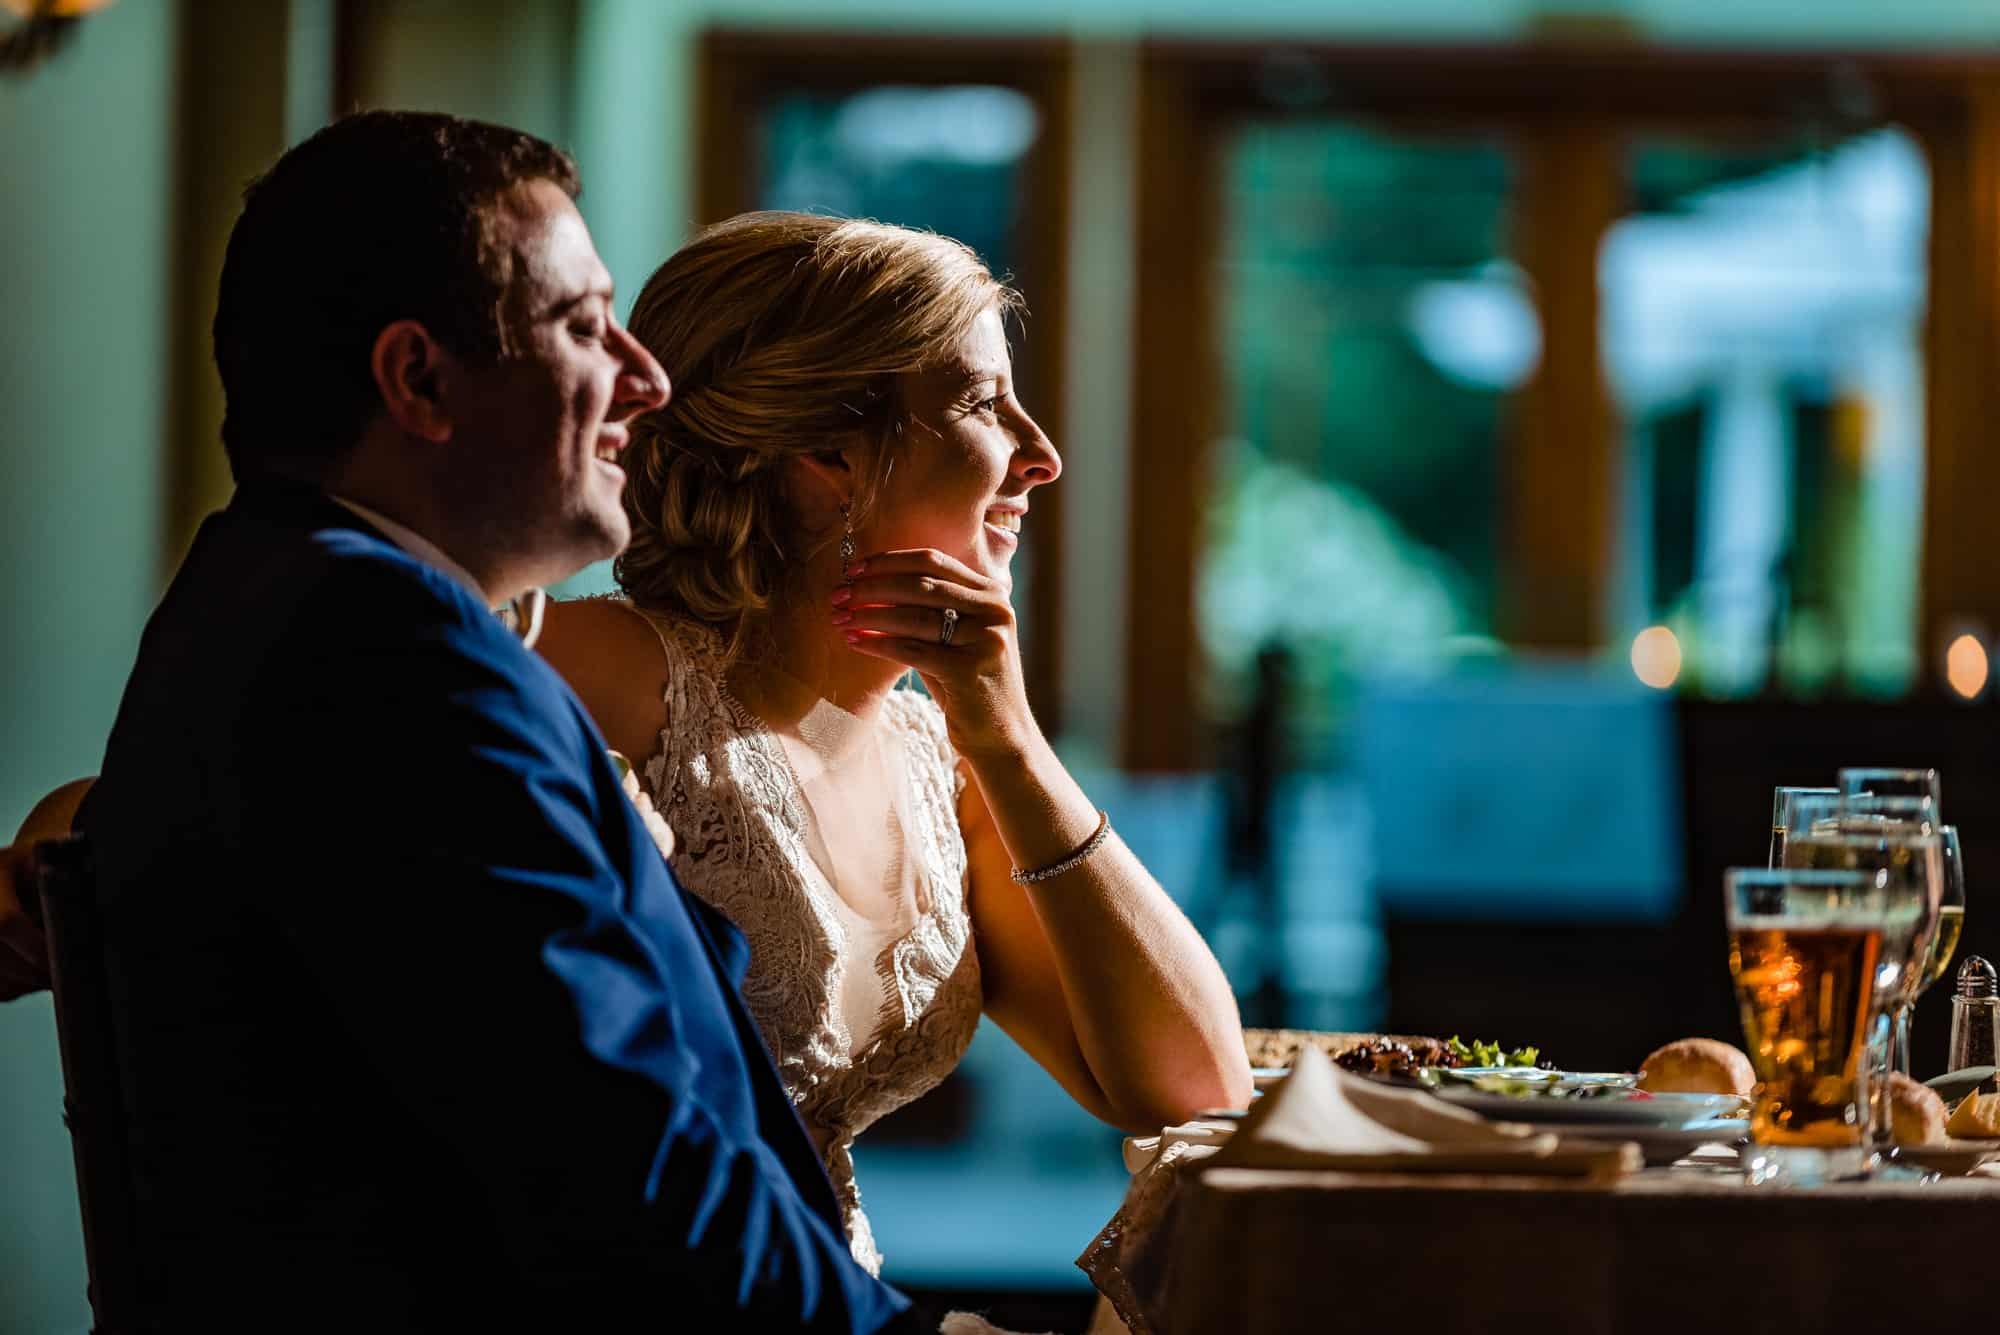 wedding reception, side profile of bride and groom smiling at guests